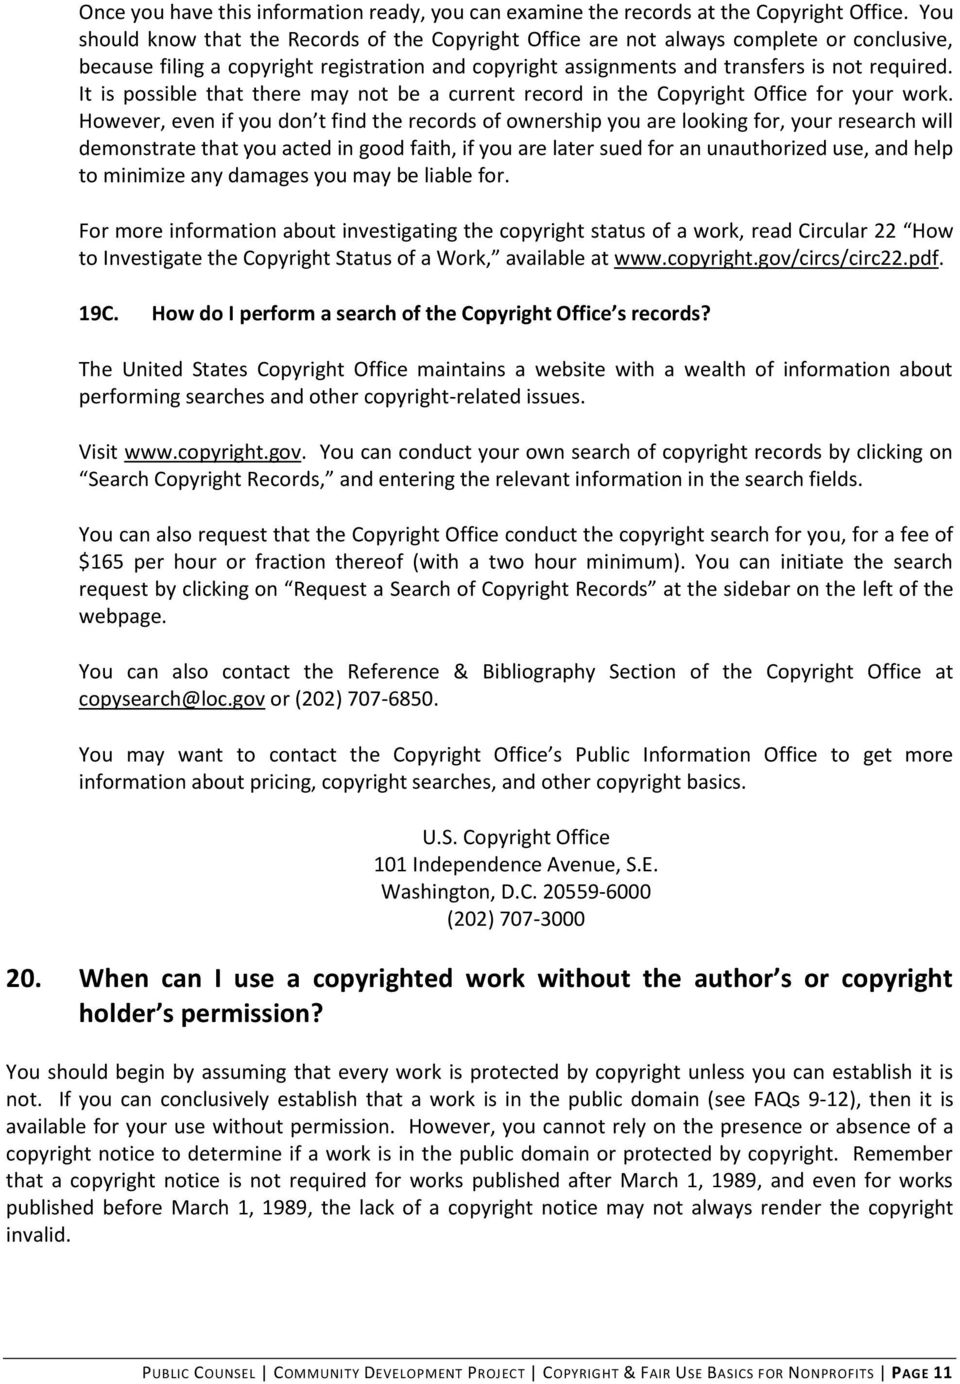 It is possible that there may not be a current record in the Copyright Office for your work.